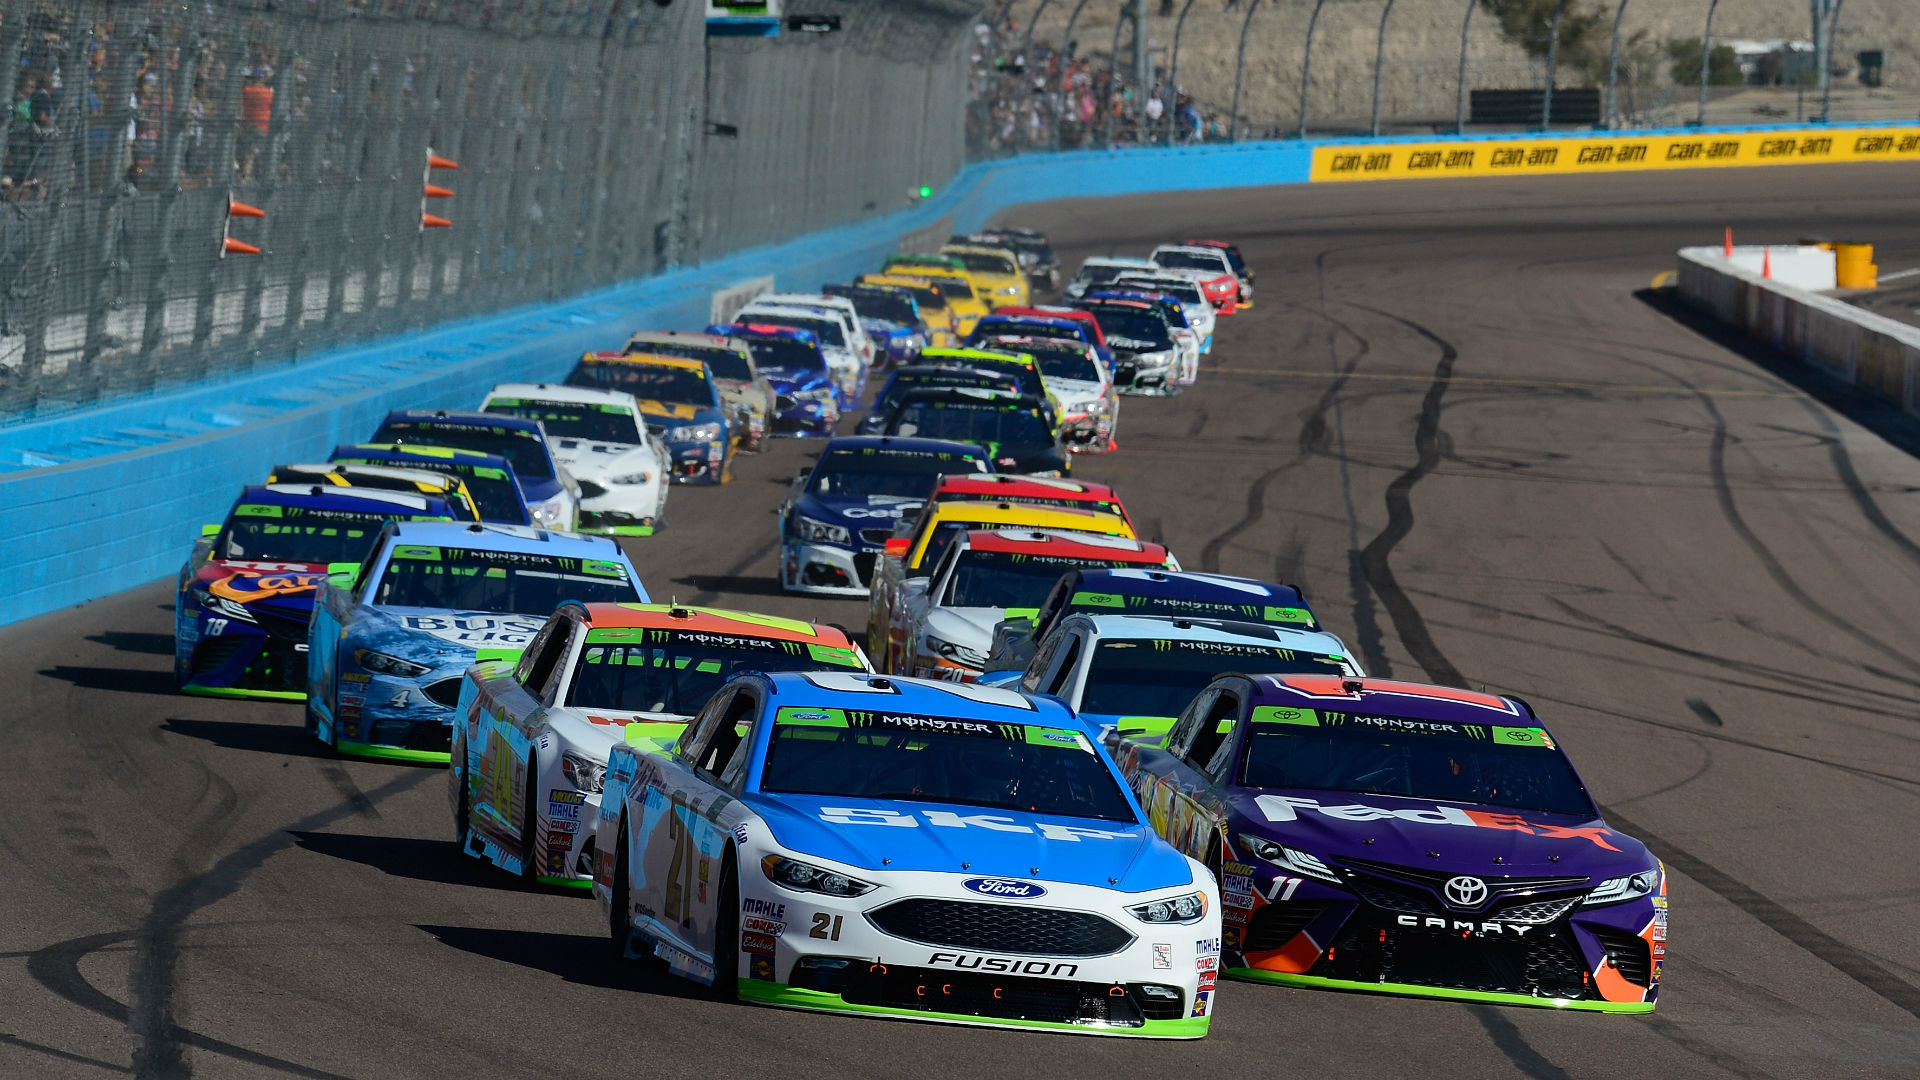 NASCAR schedule 2019: Date, time, TV channels for every Cup Series race